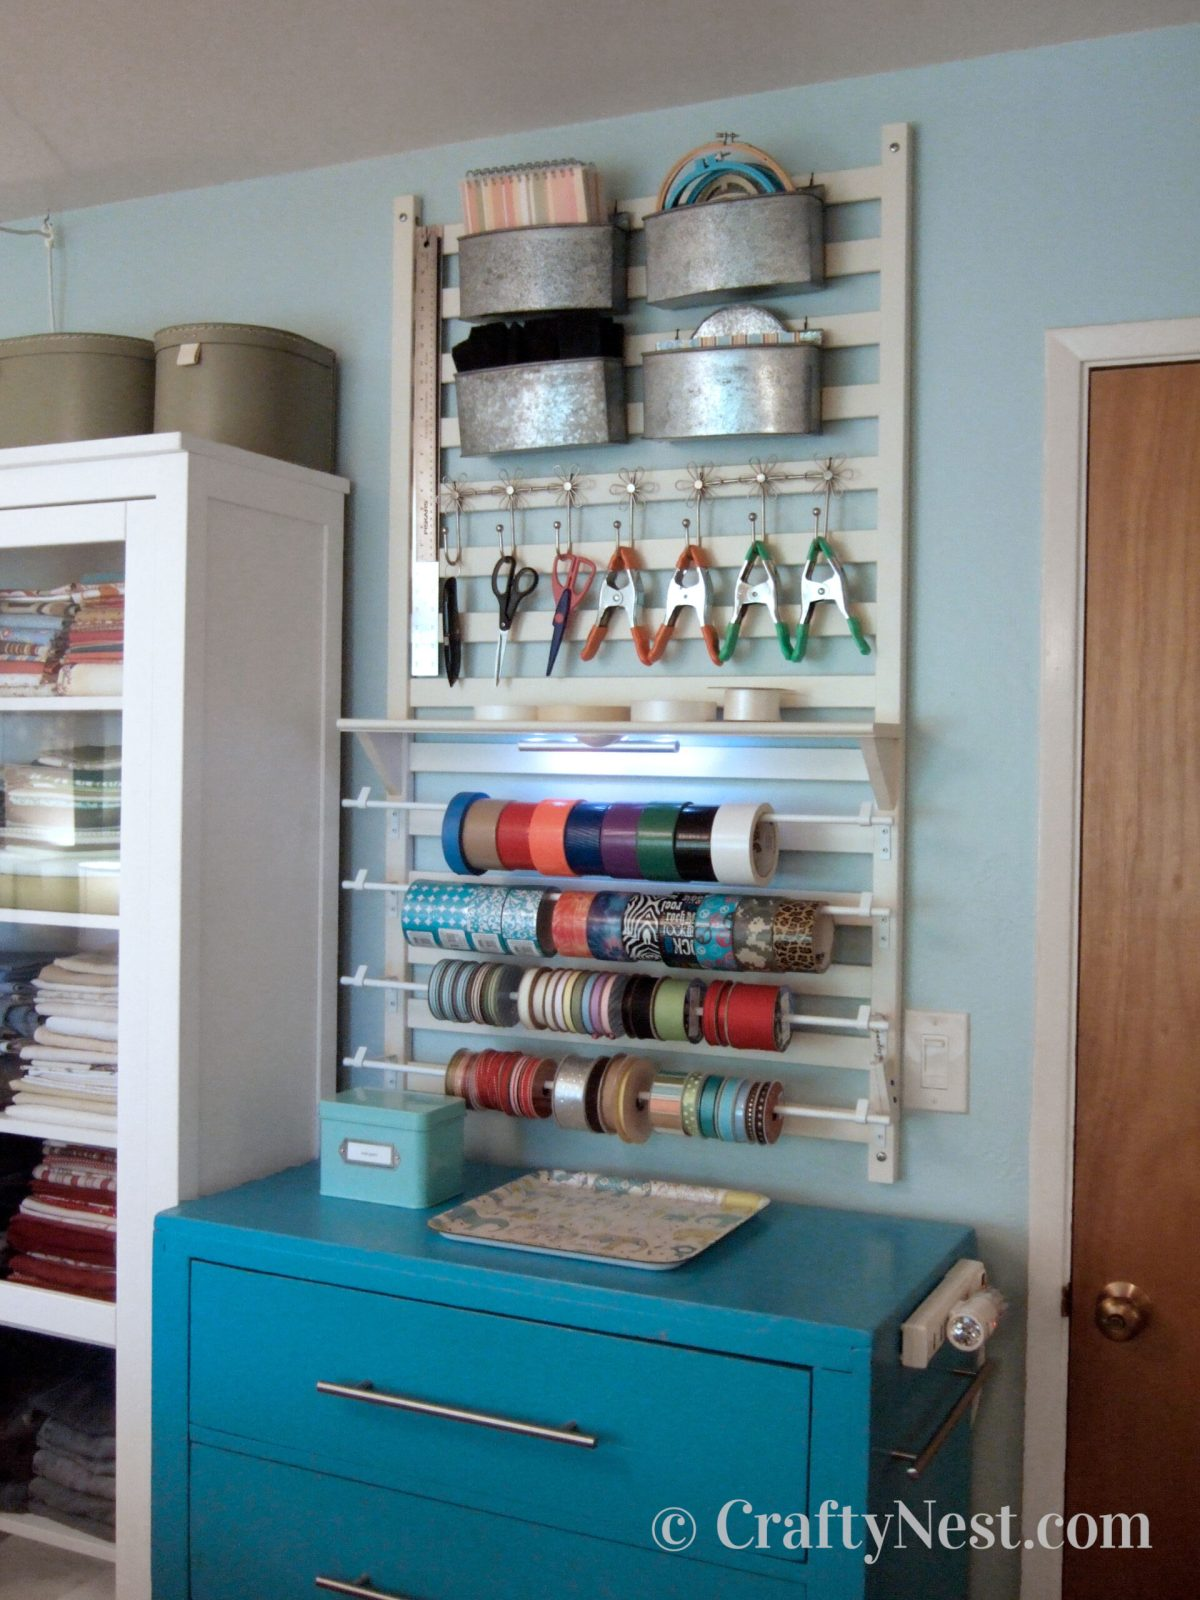 Crafting tool station with wall organizer, after photo